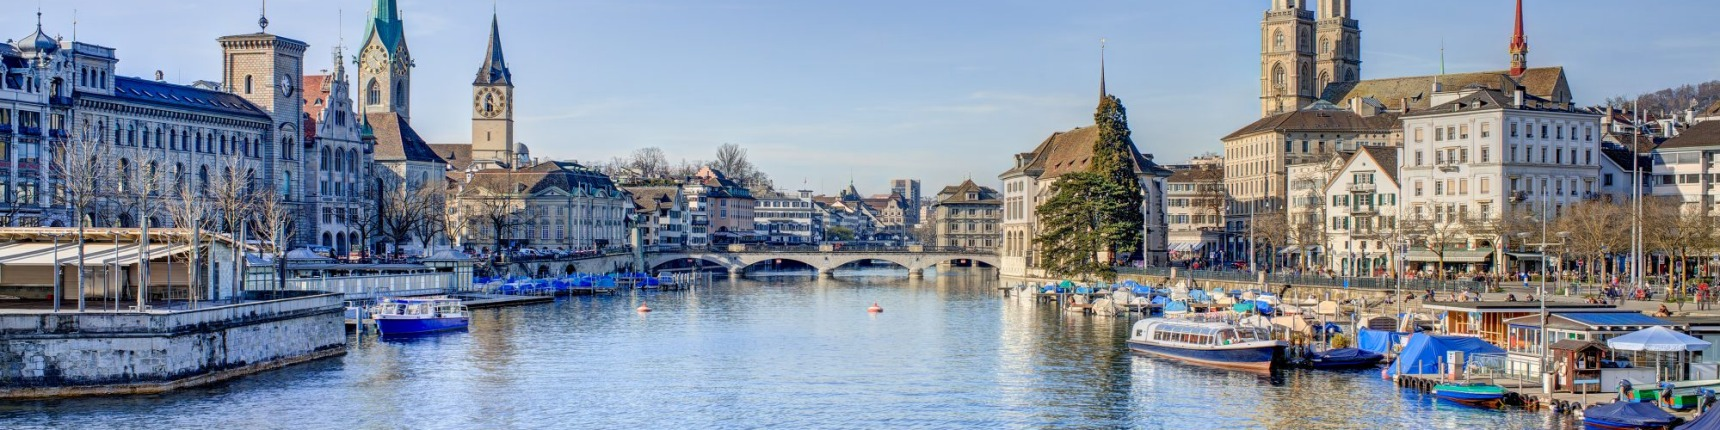 Switzerland Travel Guide Plan Your Holiday In